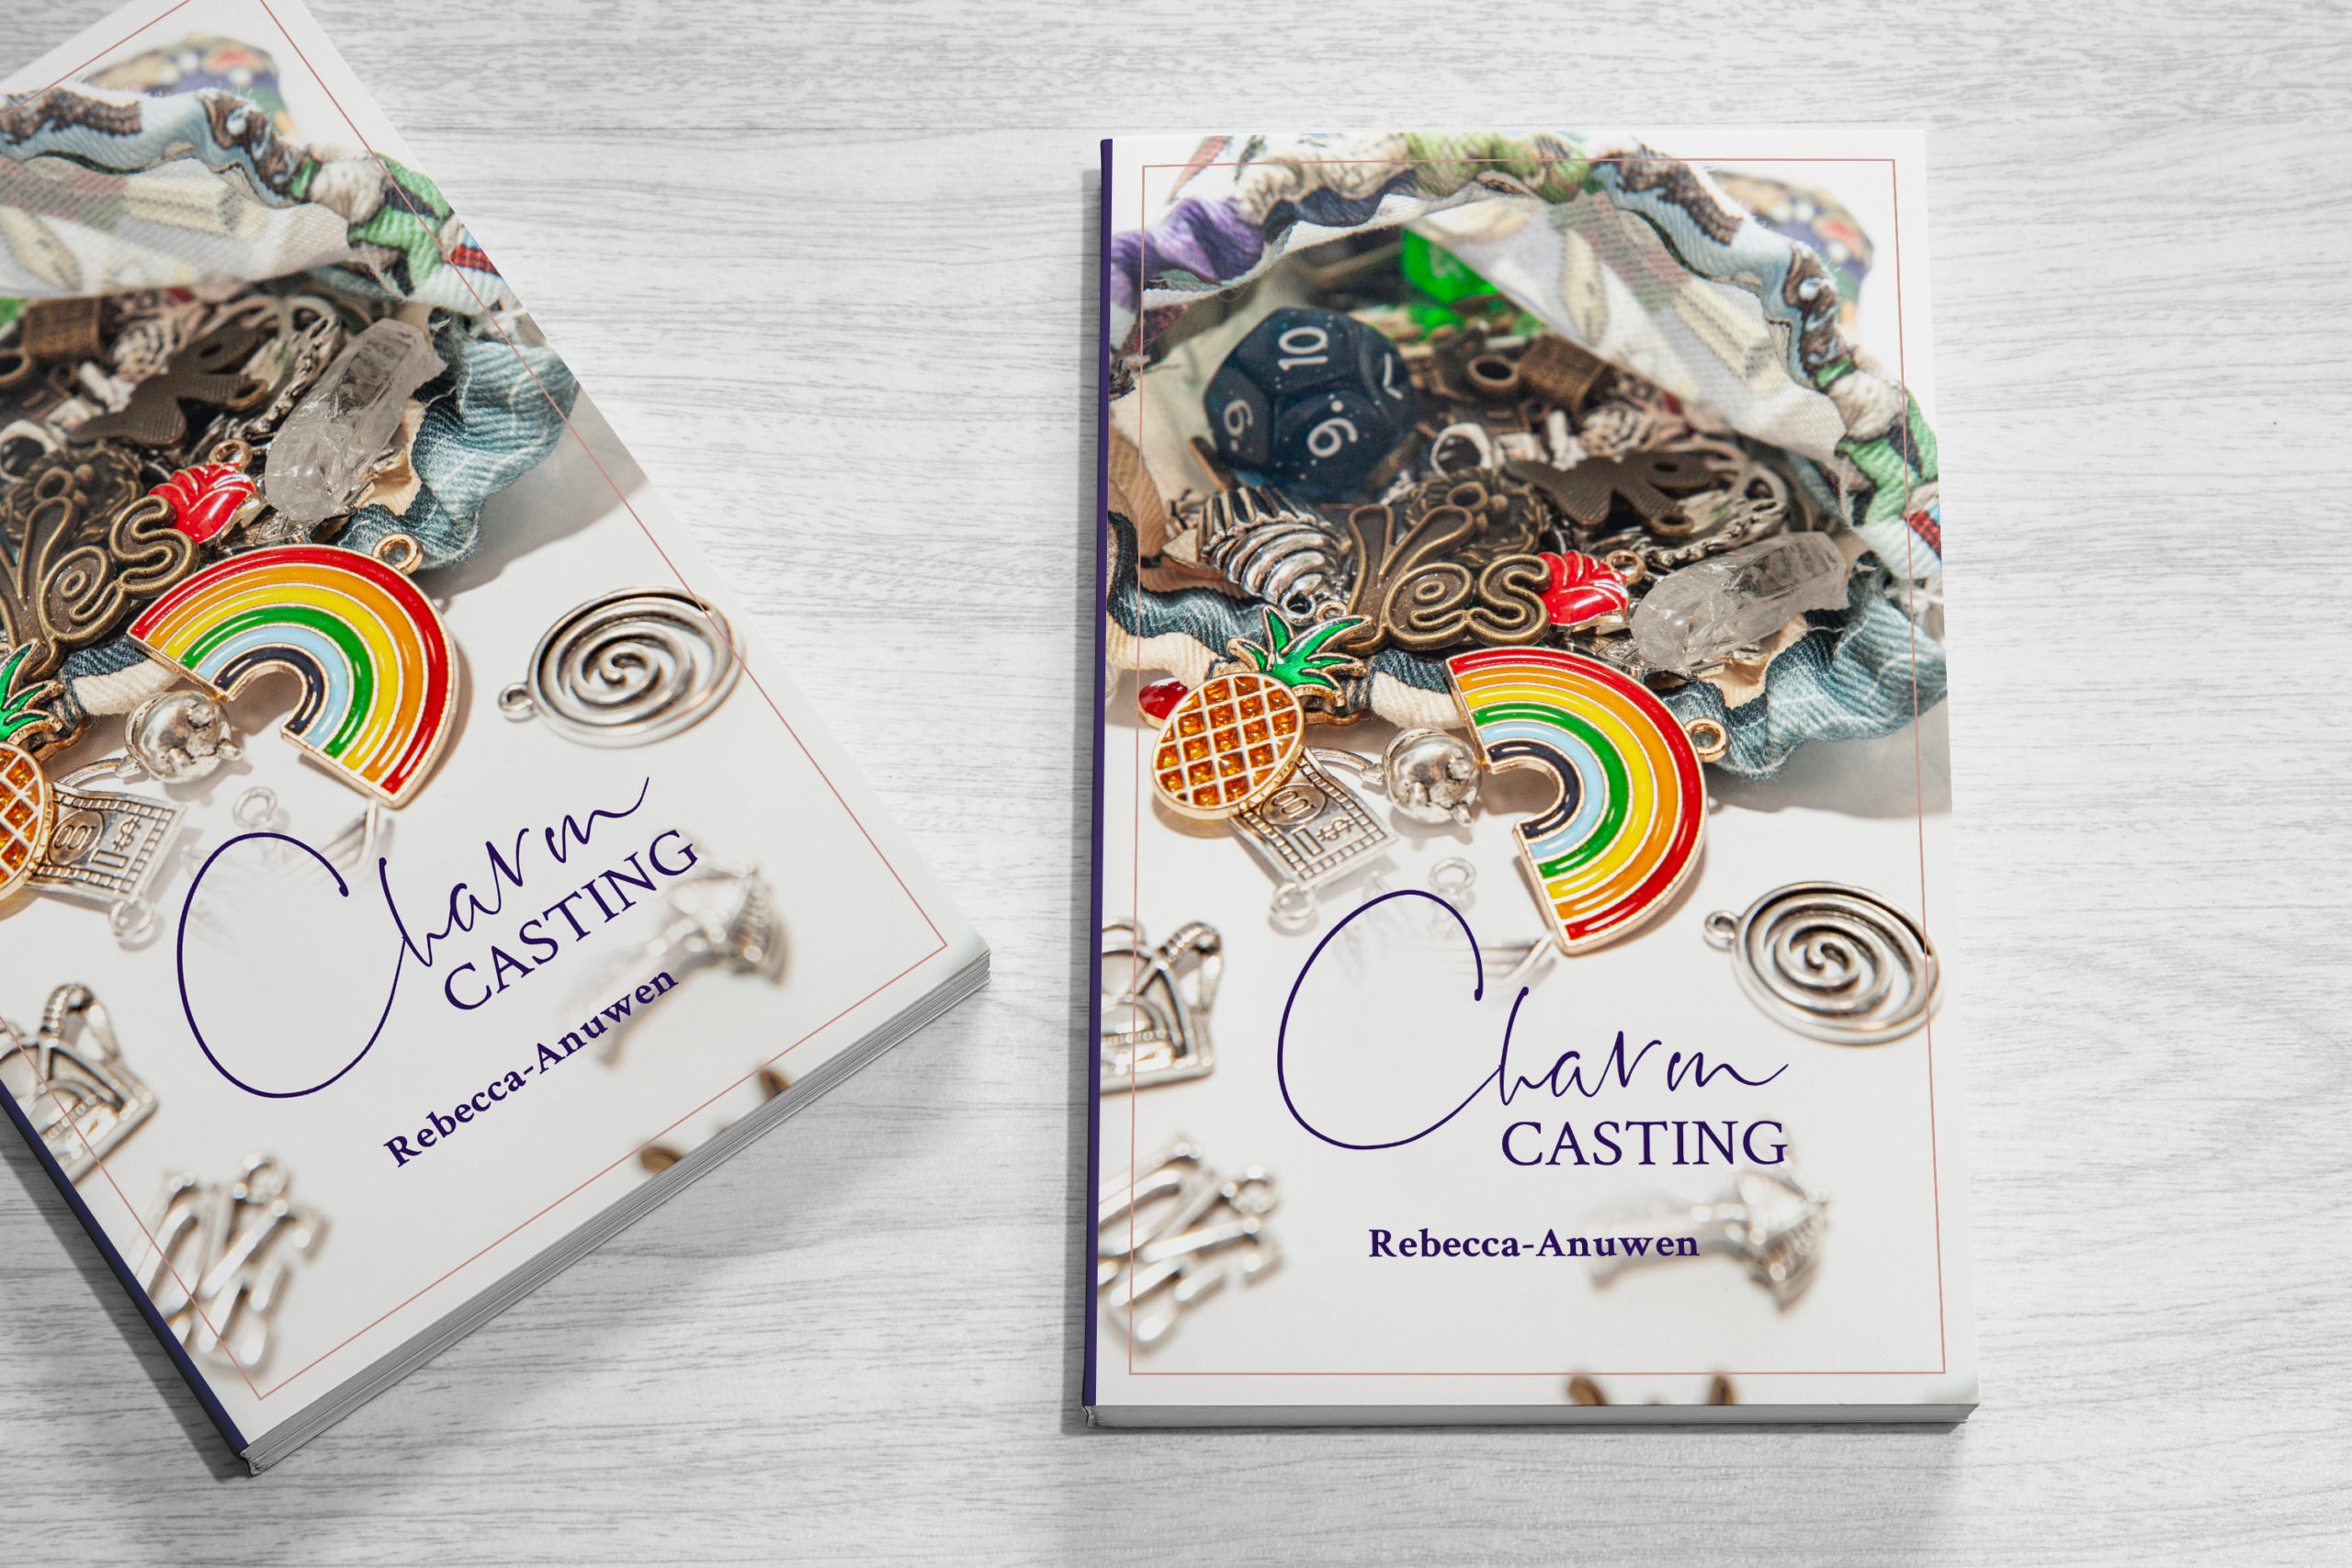 Charm Casting: The Book